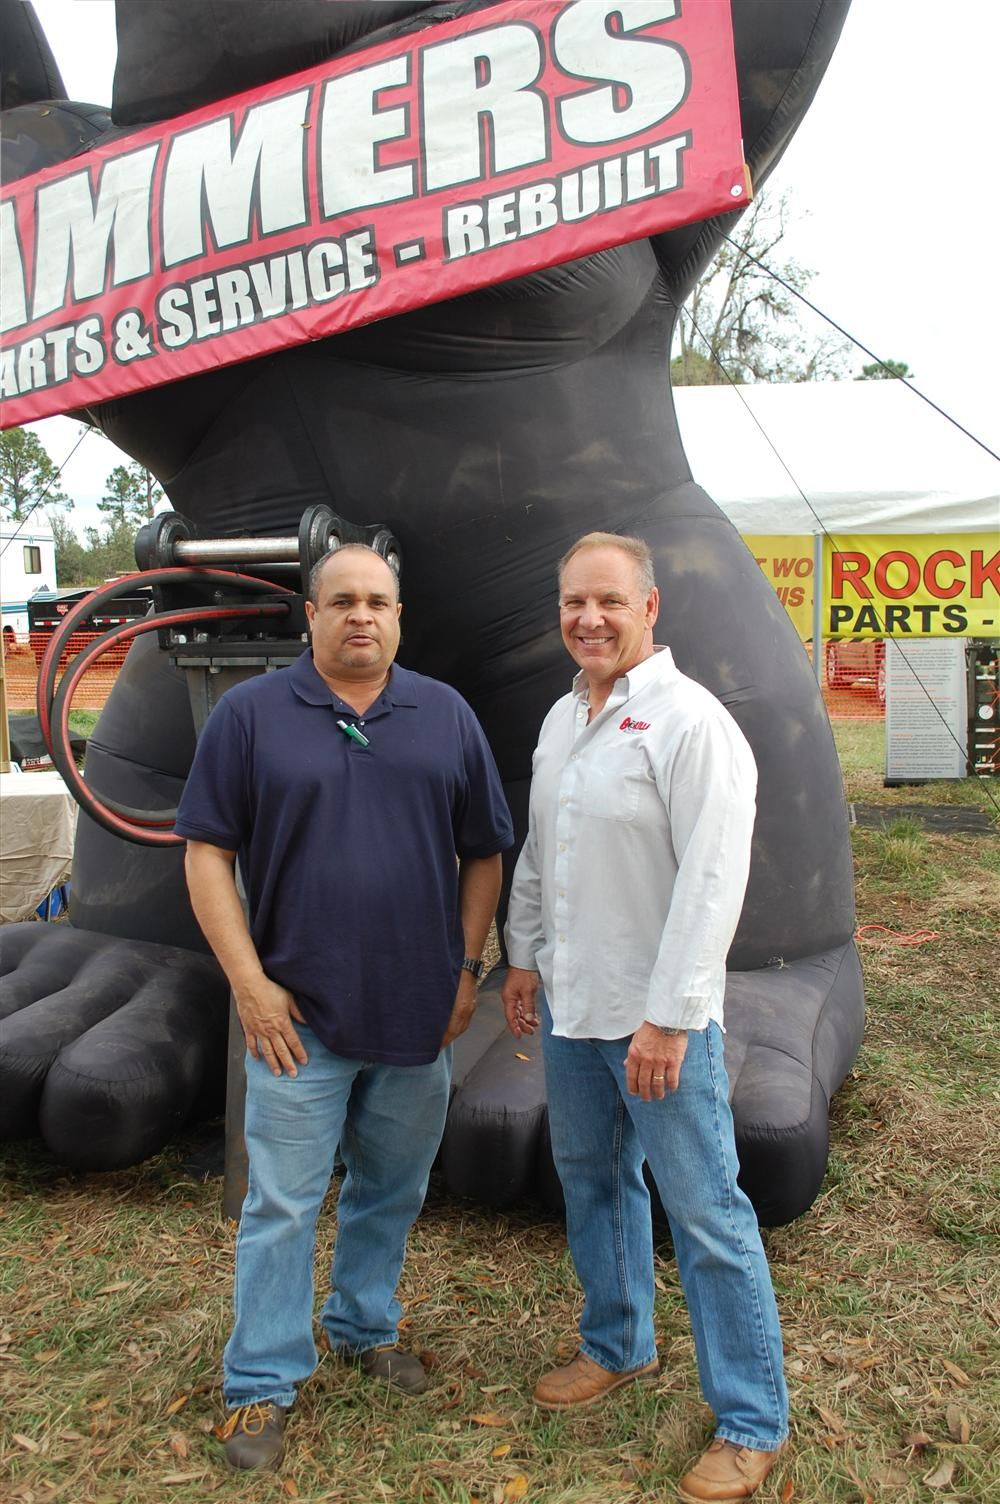 When attending a major show or the Florida auctions look for the big Gorilla to find high-quality hydraulic hammers. Carlos Santos (L) and Bob Tedesco, president of Gorilla Hammers.